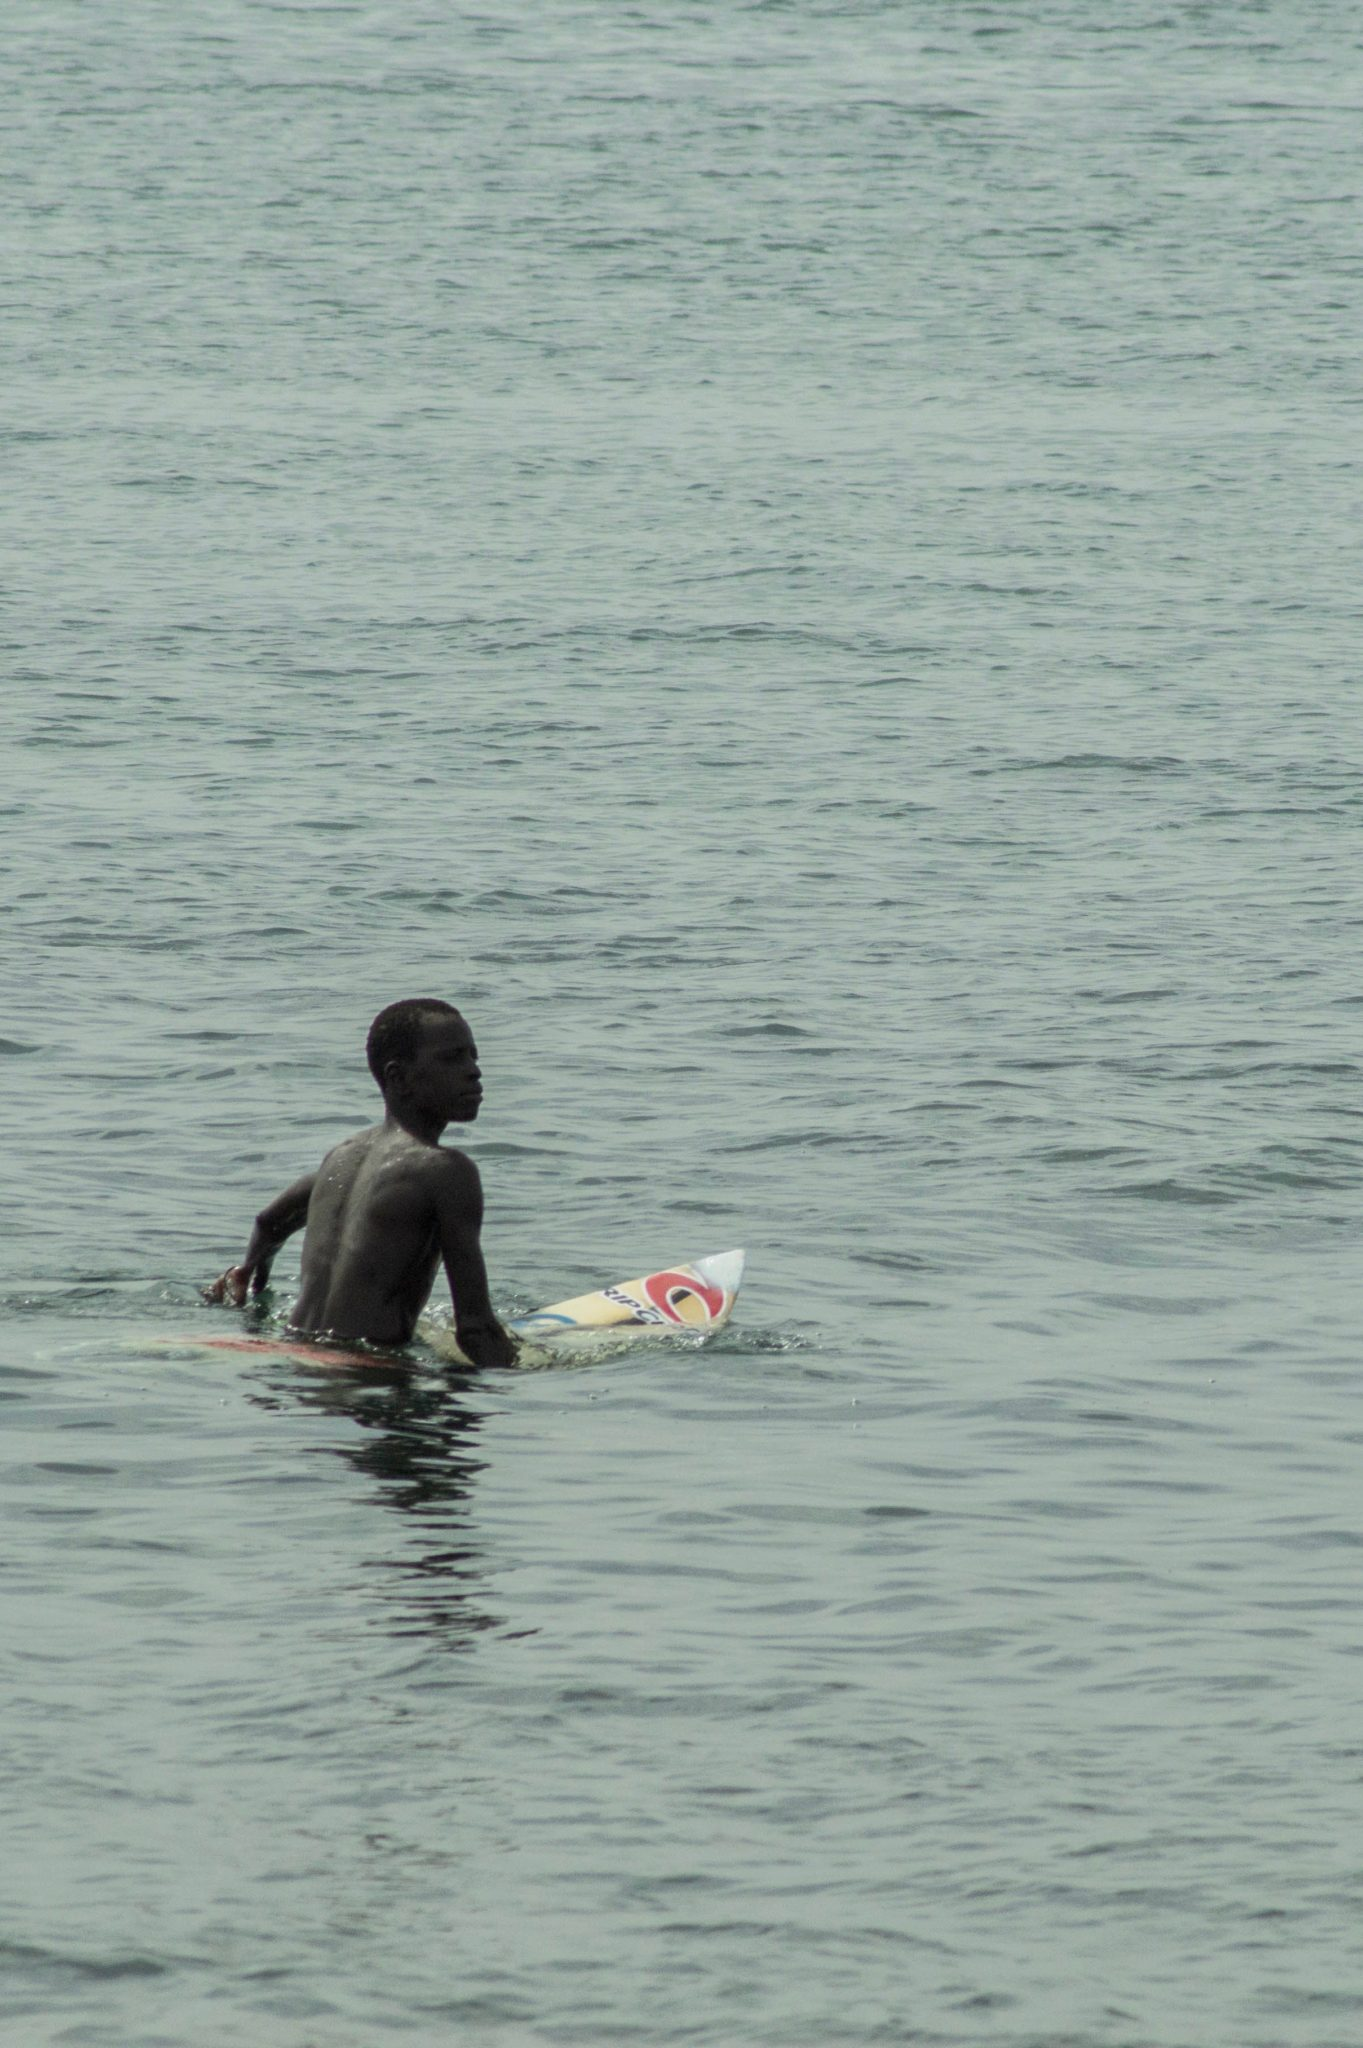 Senegal Surf: The lull before the storm